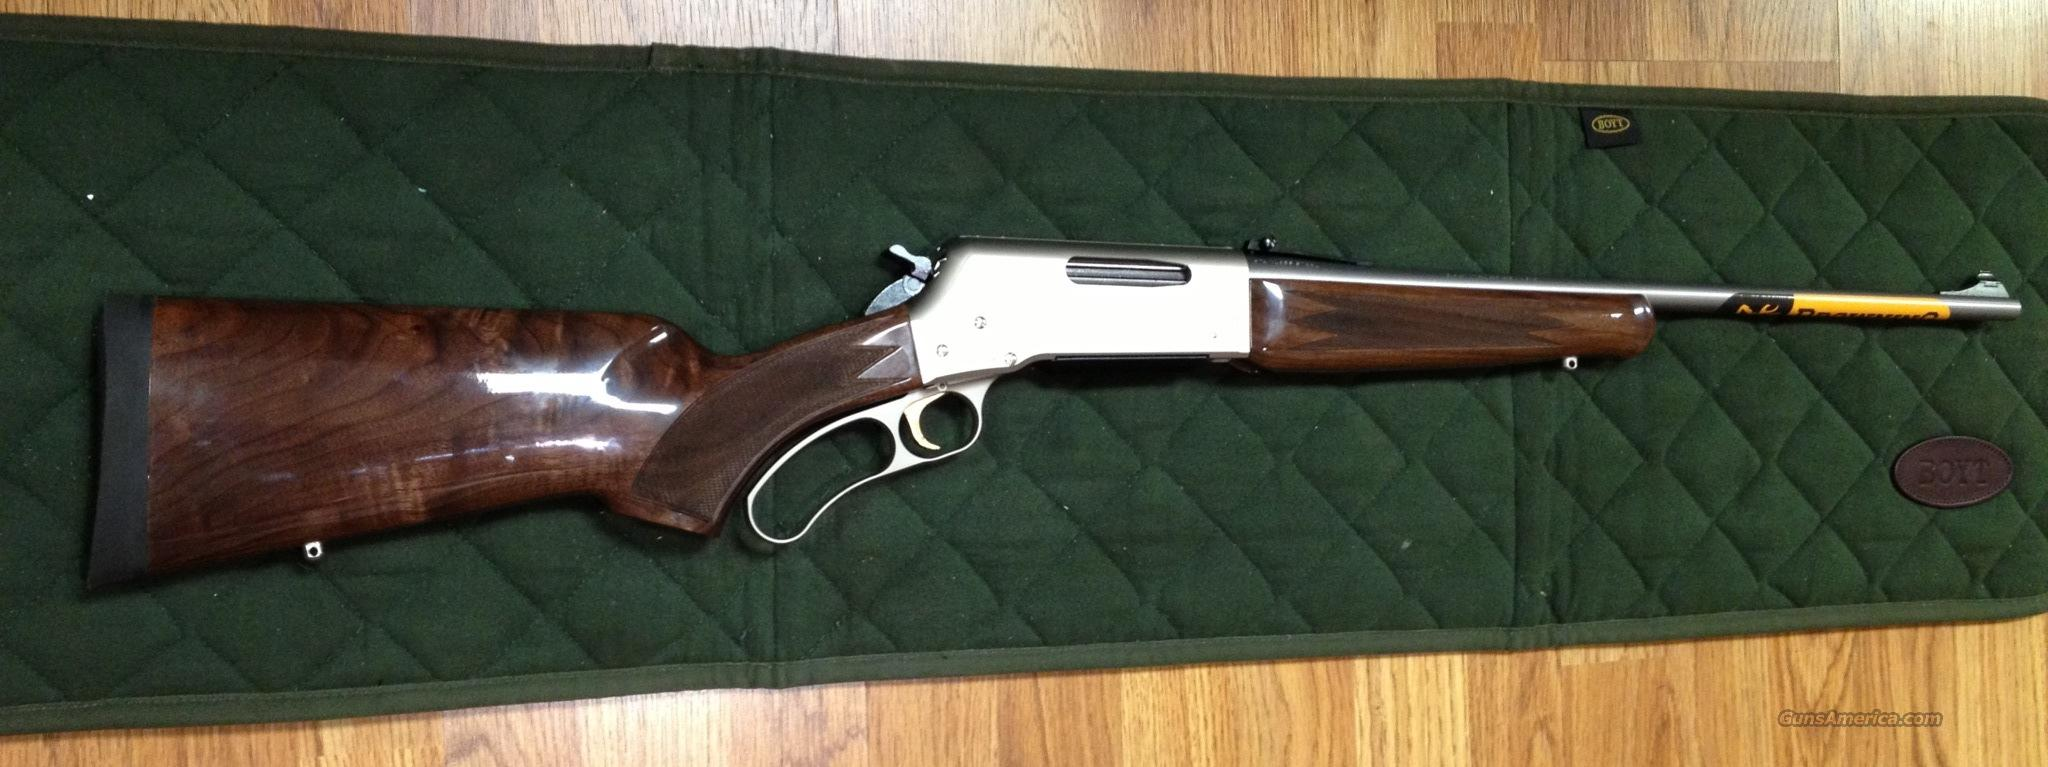 NIB Browning BLR Lightweight Stainless .243 Win.  Guns > Rifles > Browning Rifles > Lever Action